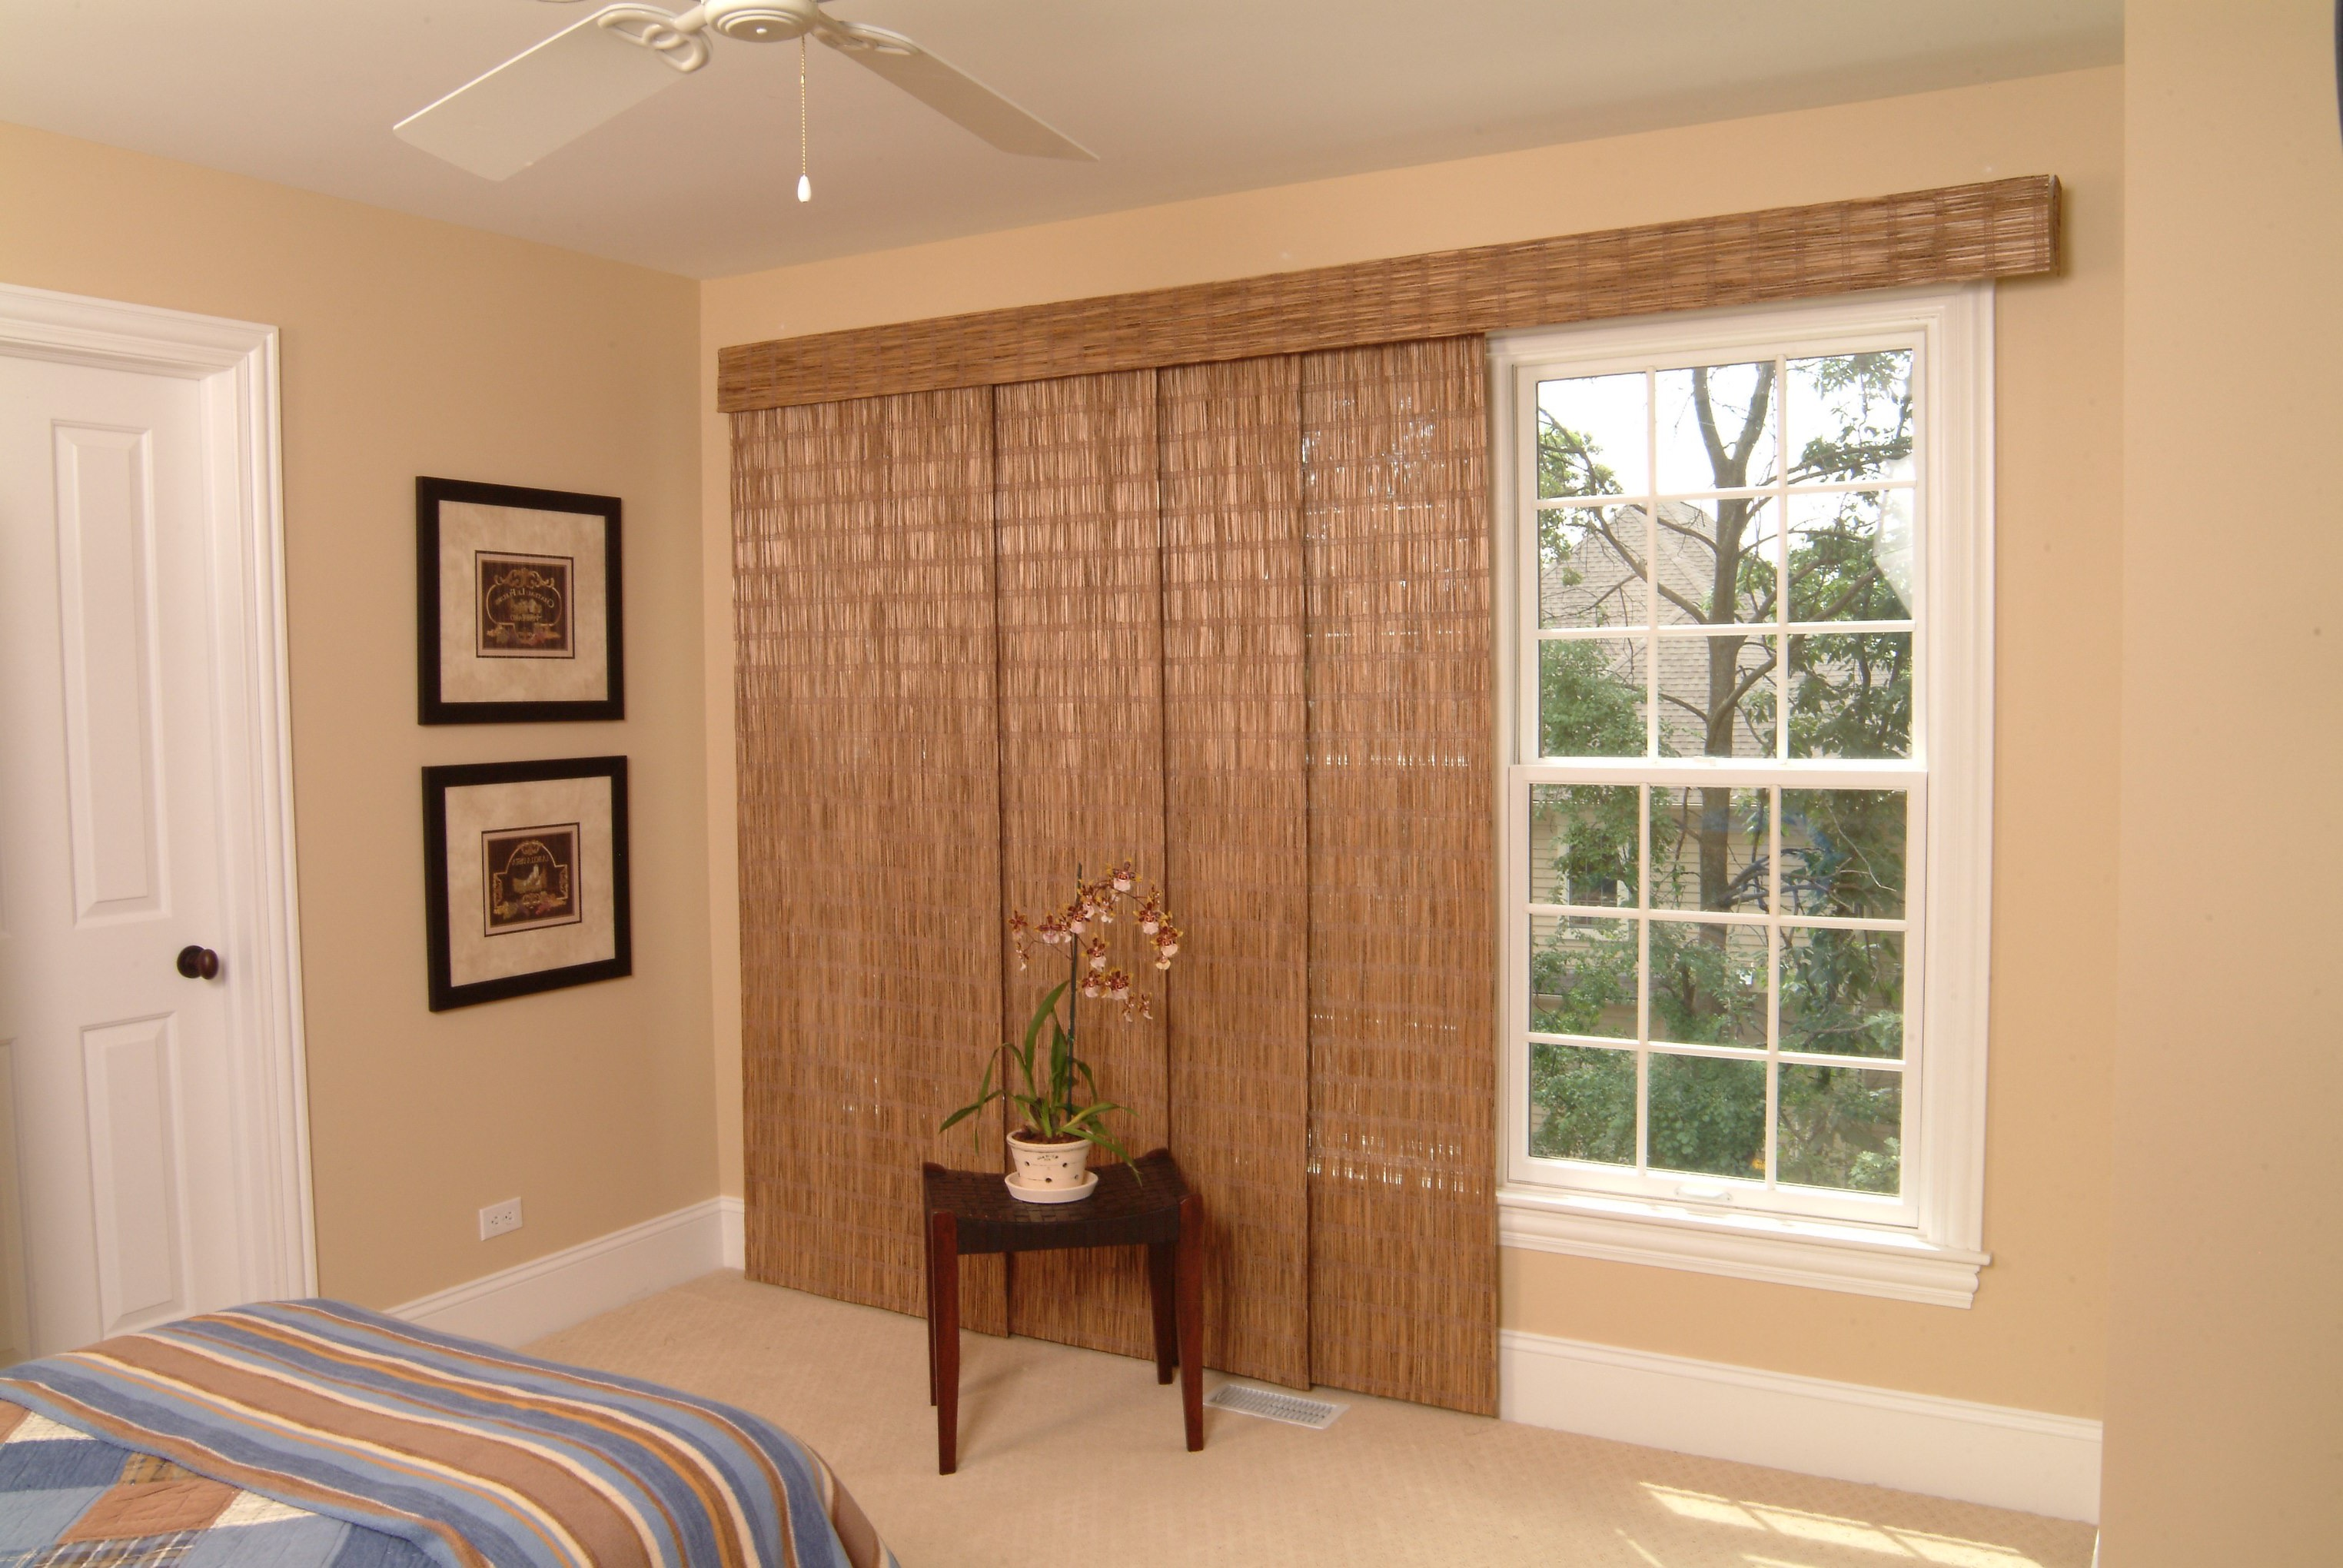 Bamboo Sliding Curtain For Windows Remodel (Image 4 of 20)